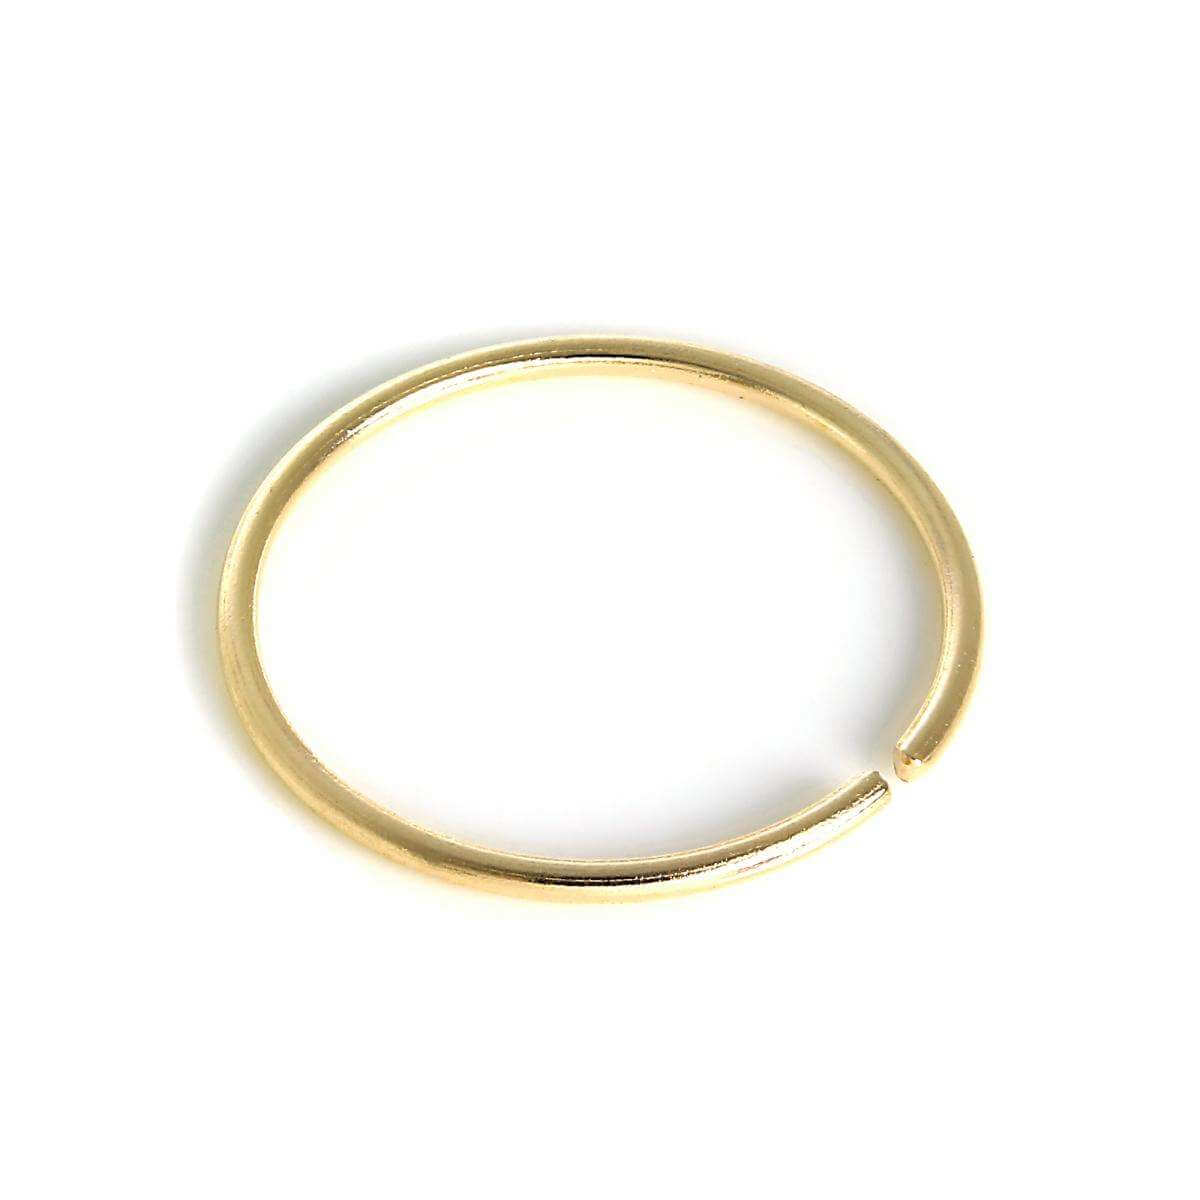 9ct Gold 8mm Nose Hoop Ring